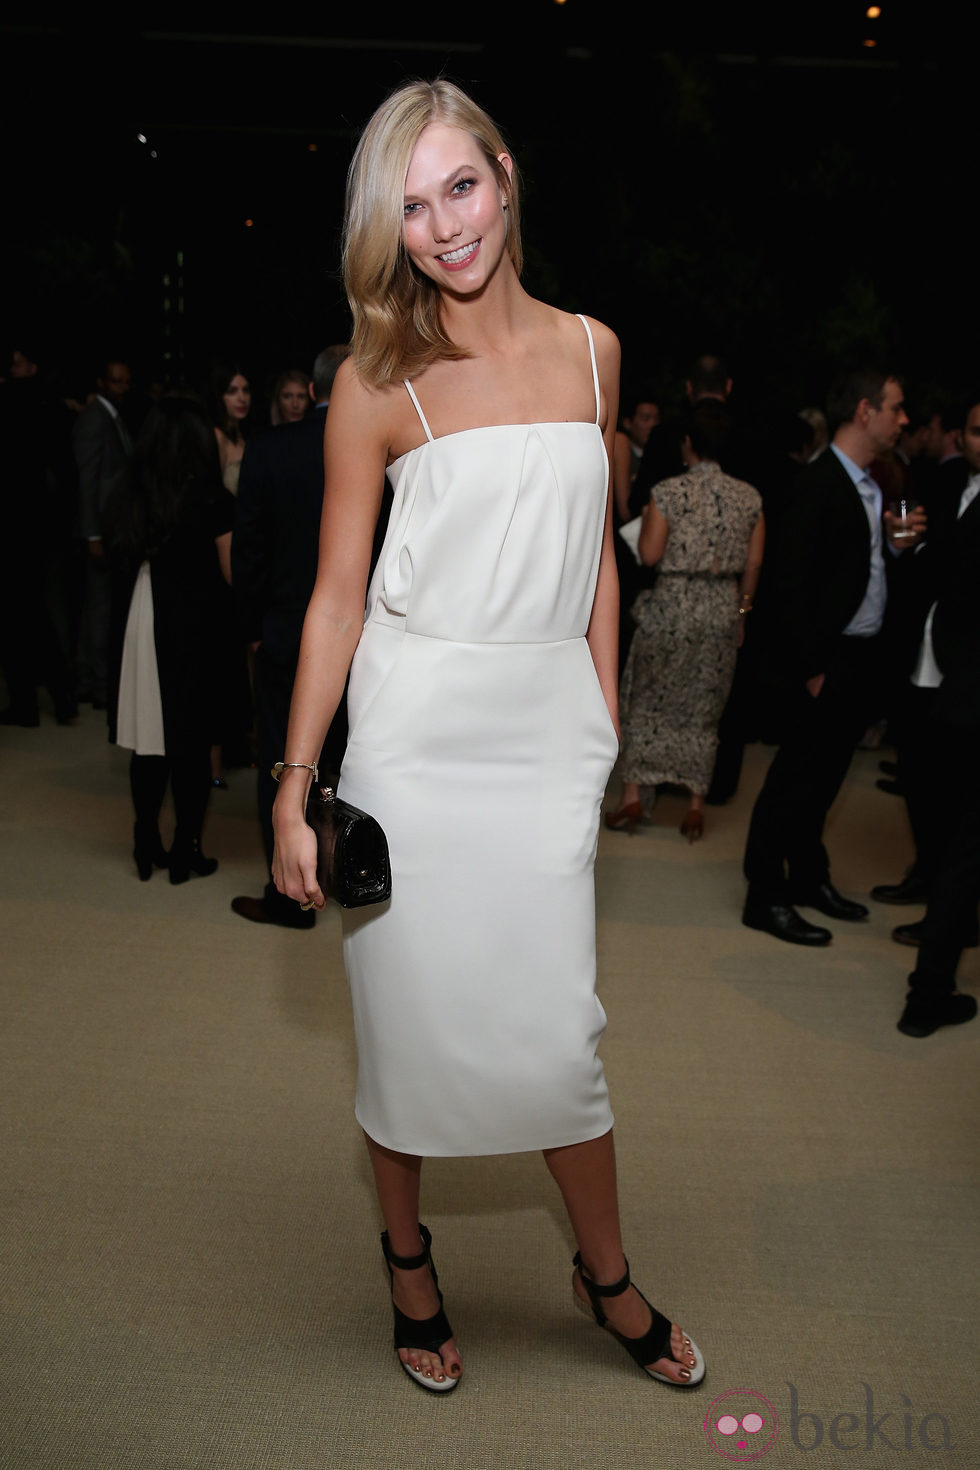 Karlie Kloss en la entrega de los CFDA 2014 / Vogue Fashion Fund